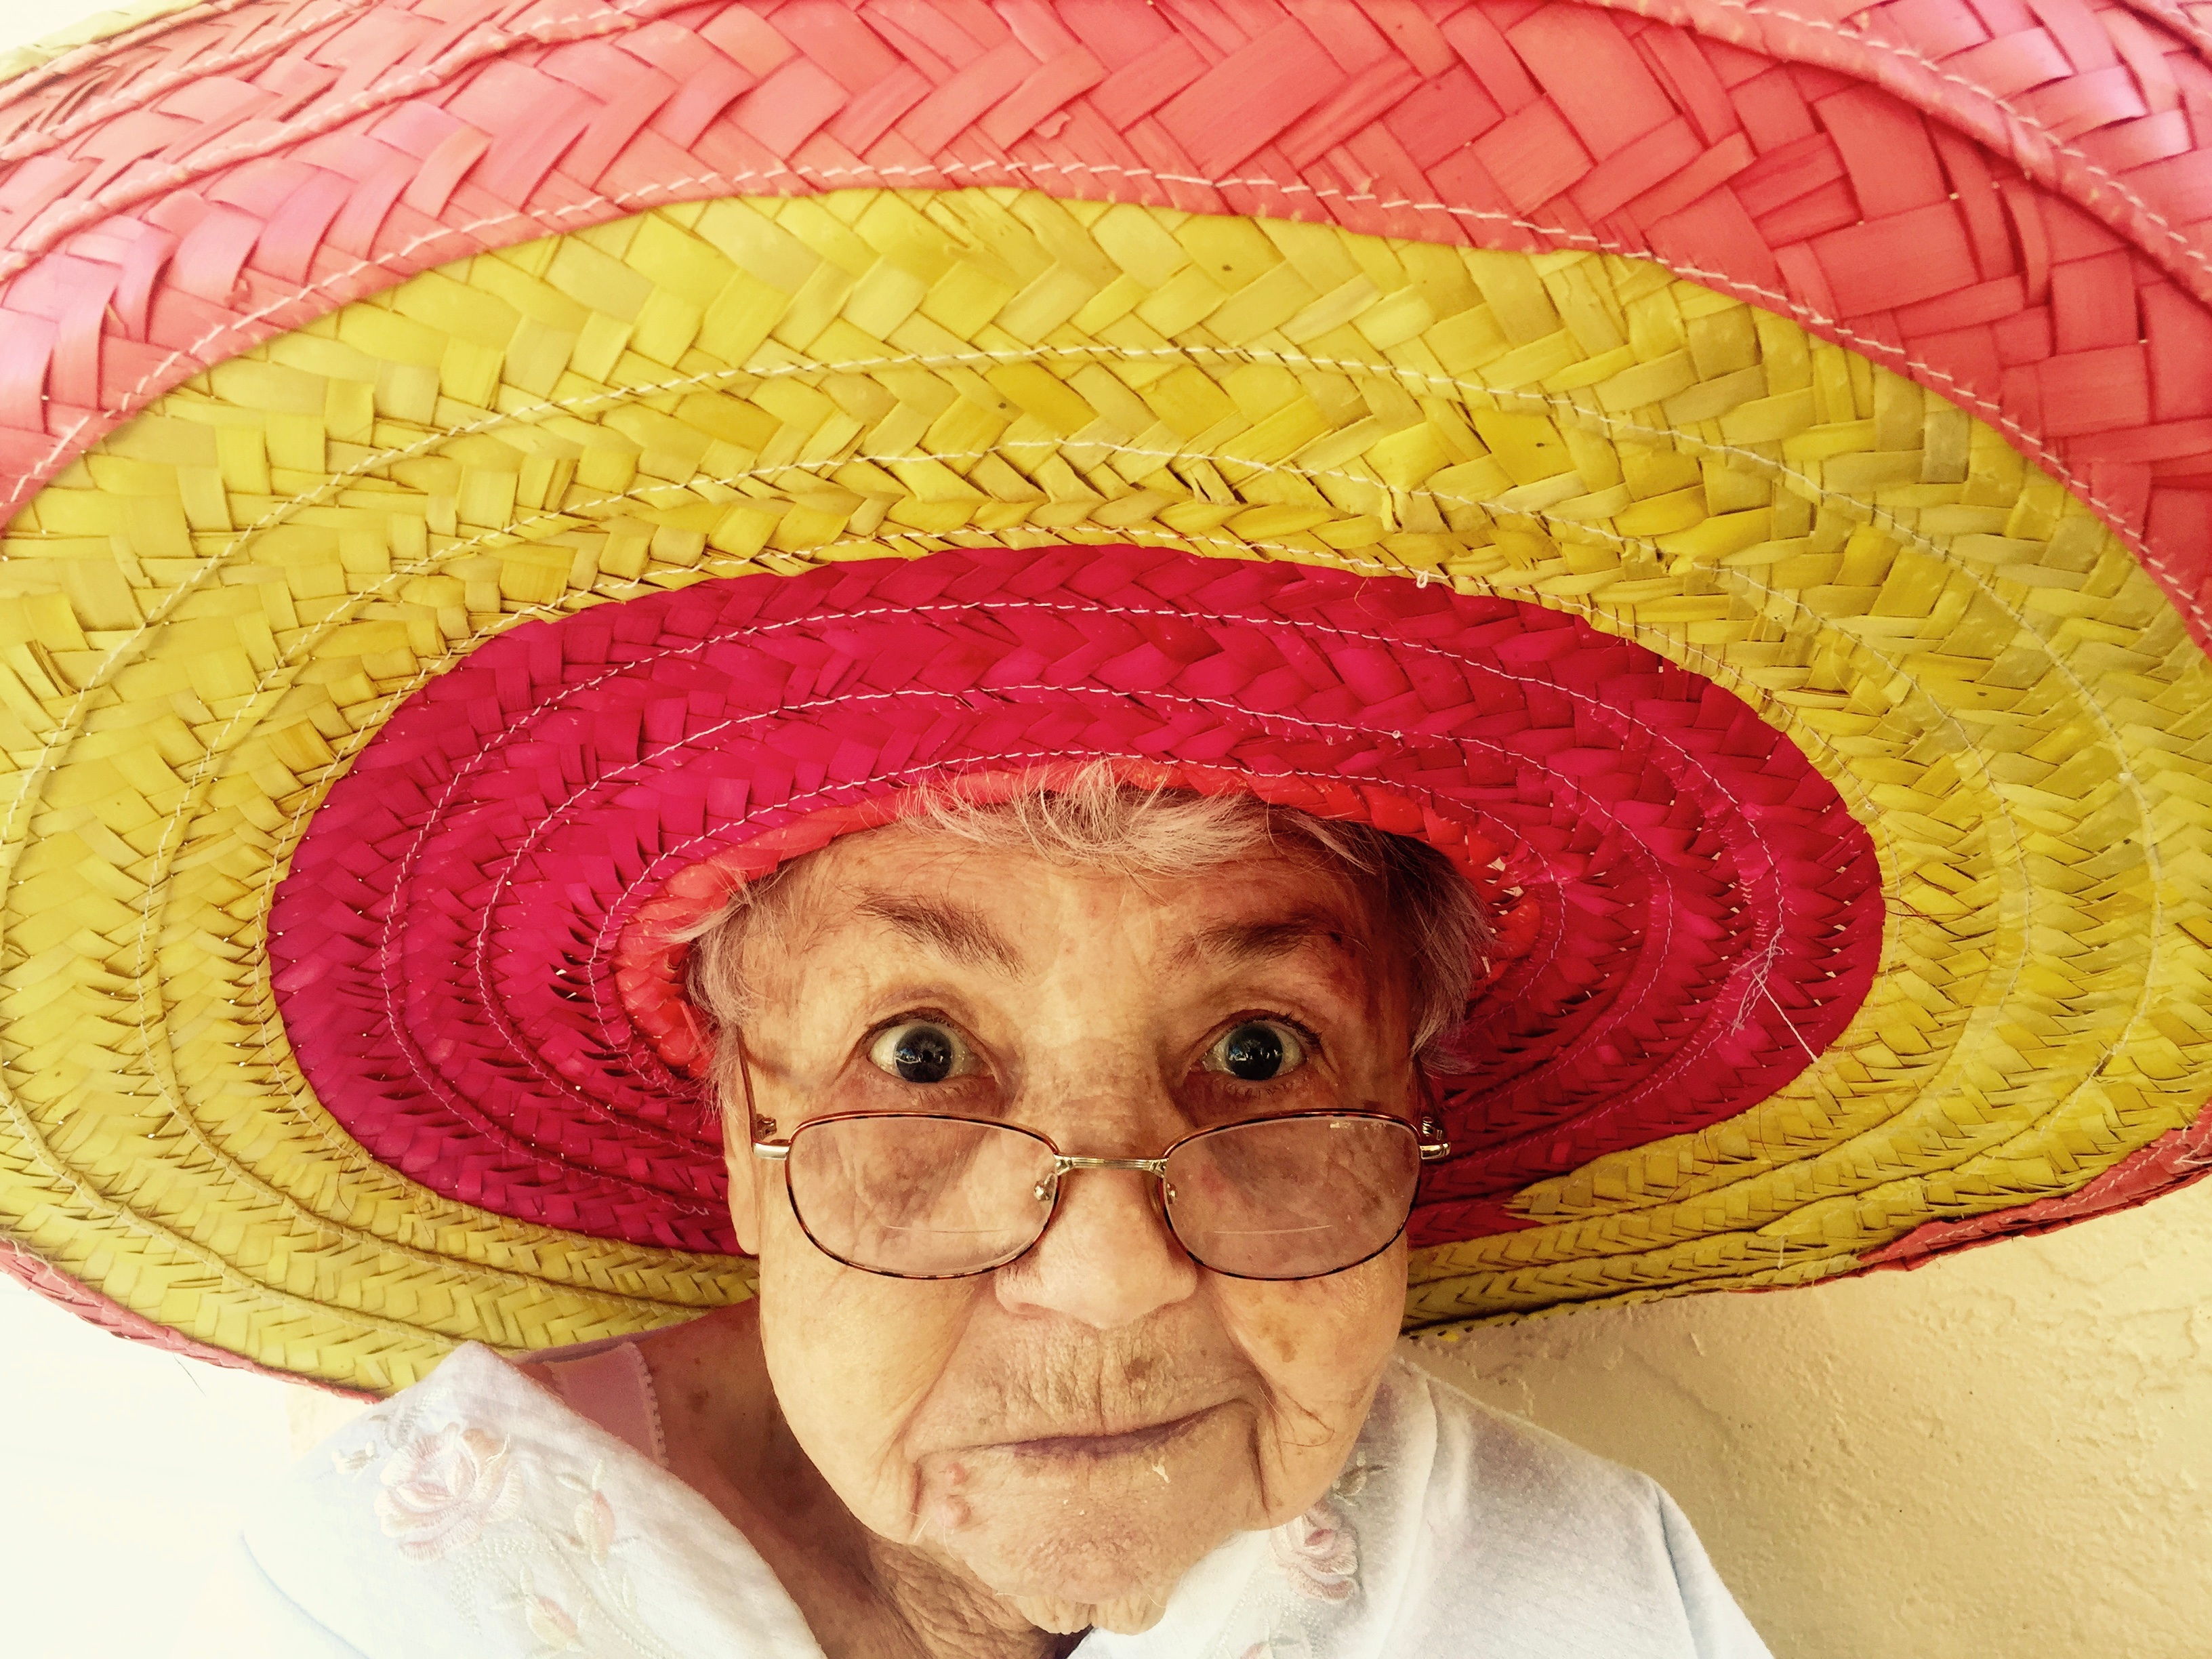 Rules dating mexican man with sombrero